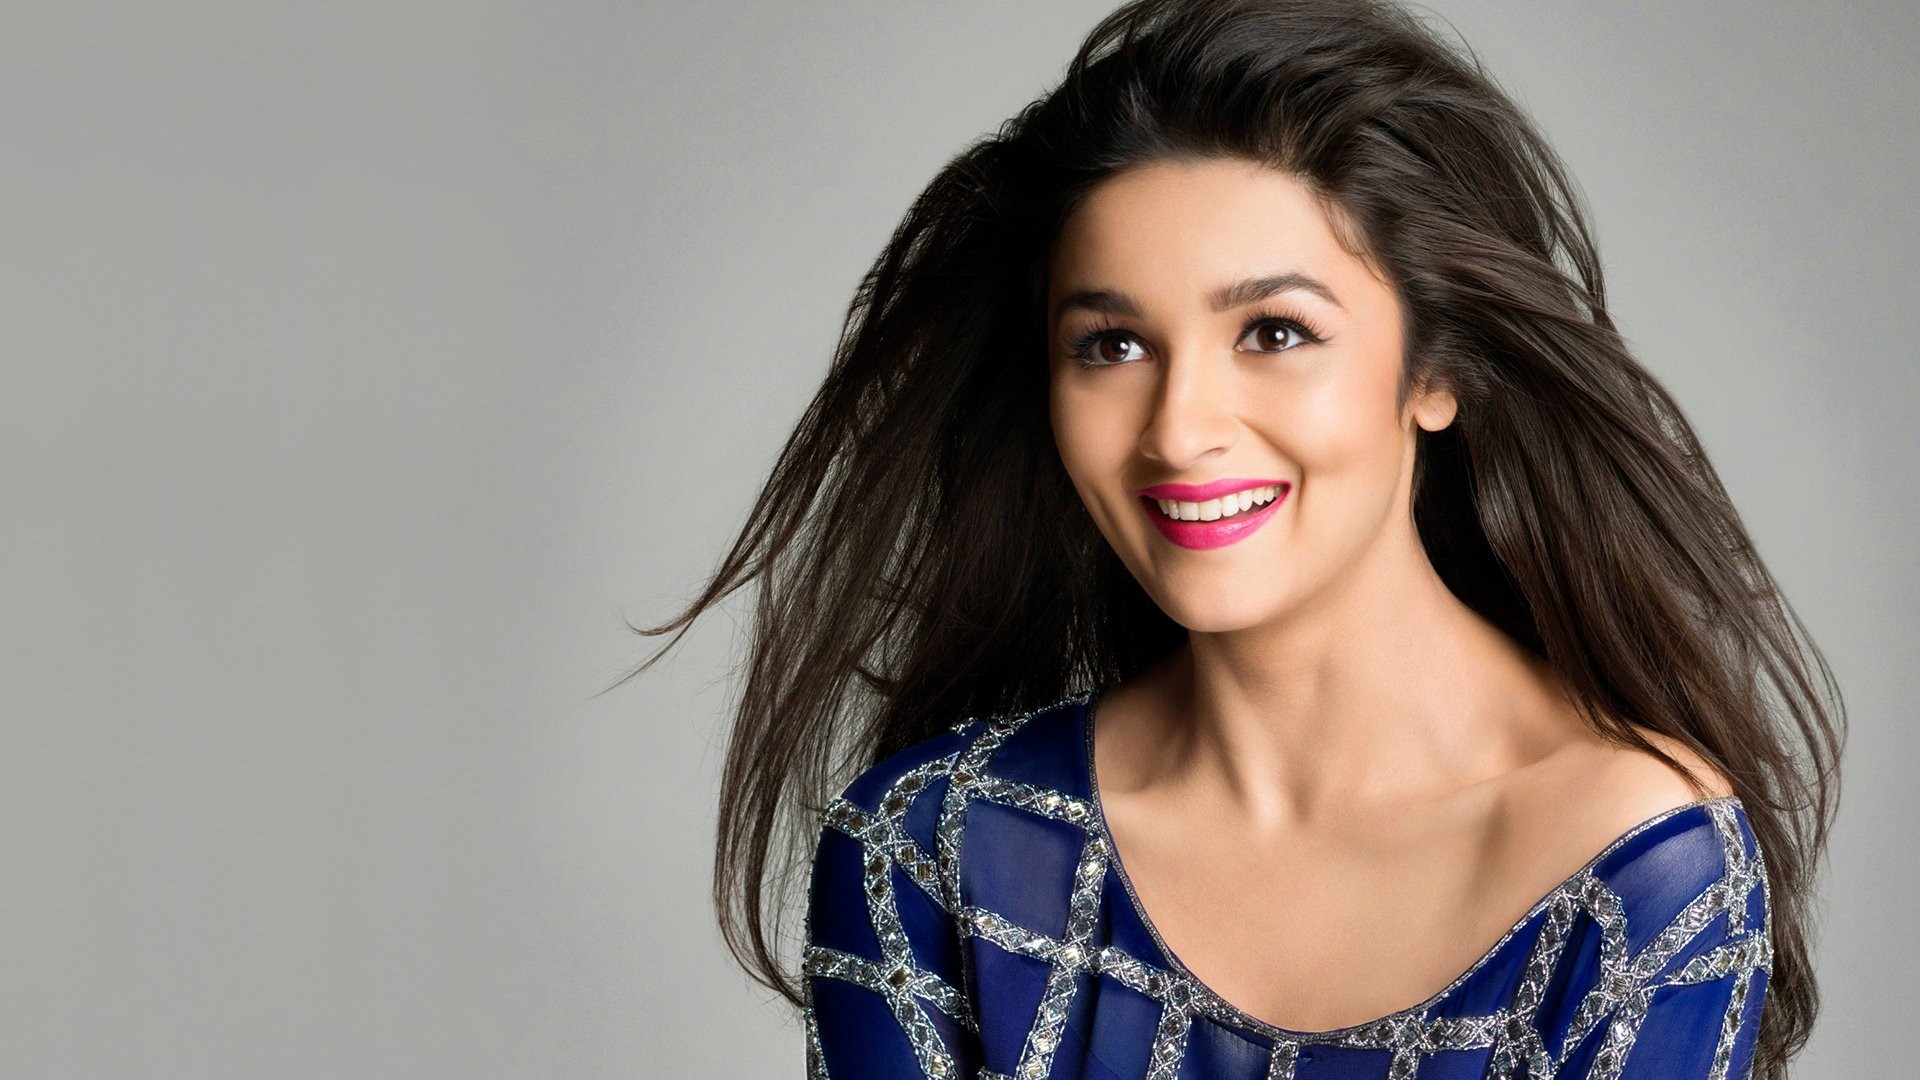 New Bollywood Actress Wallpaper 2018 86 Images